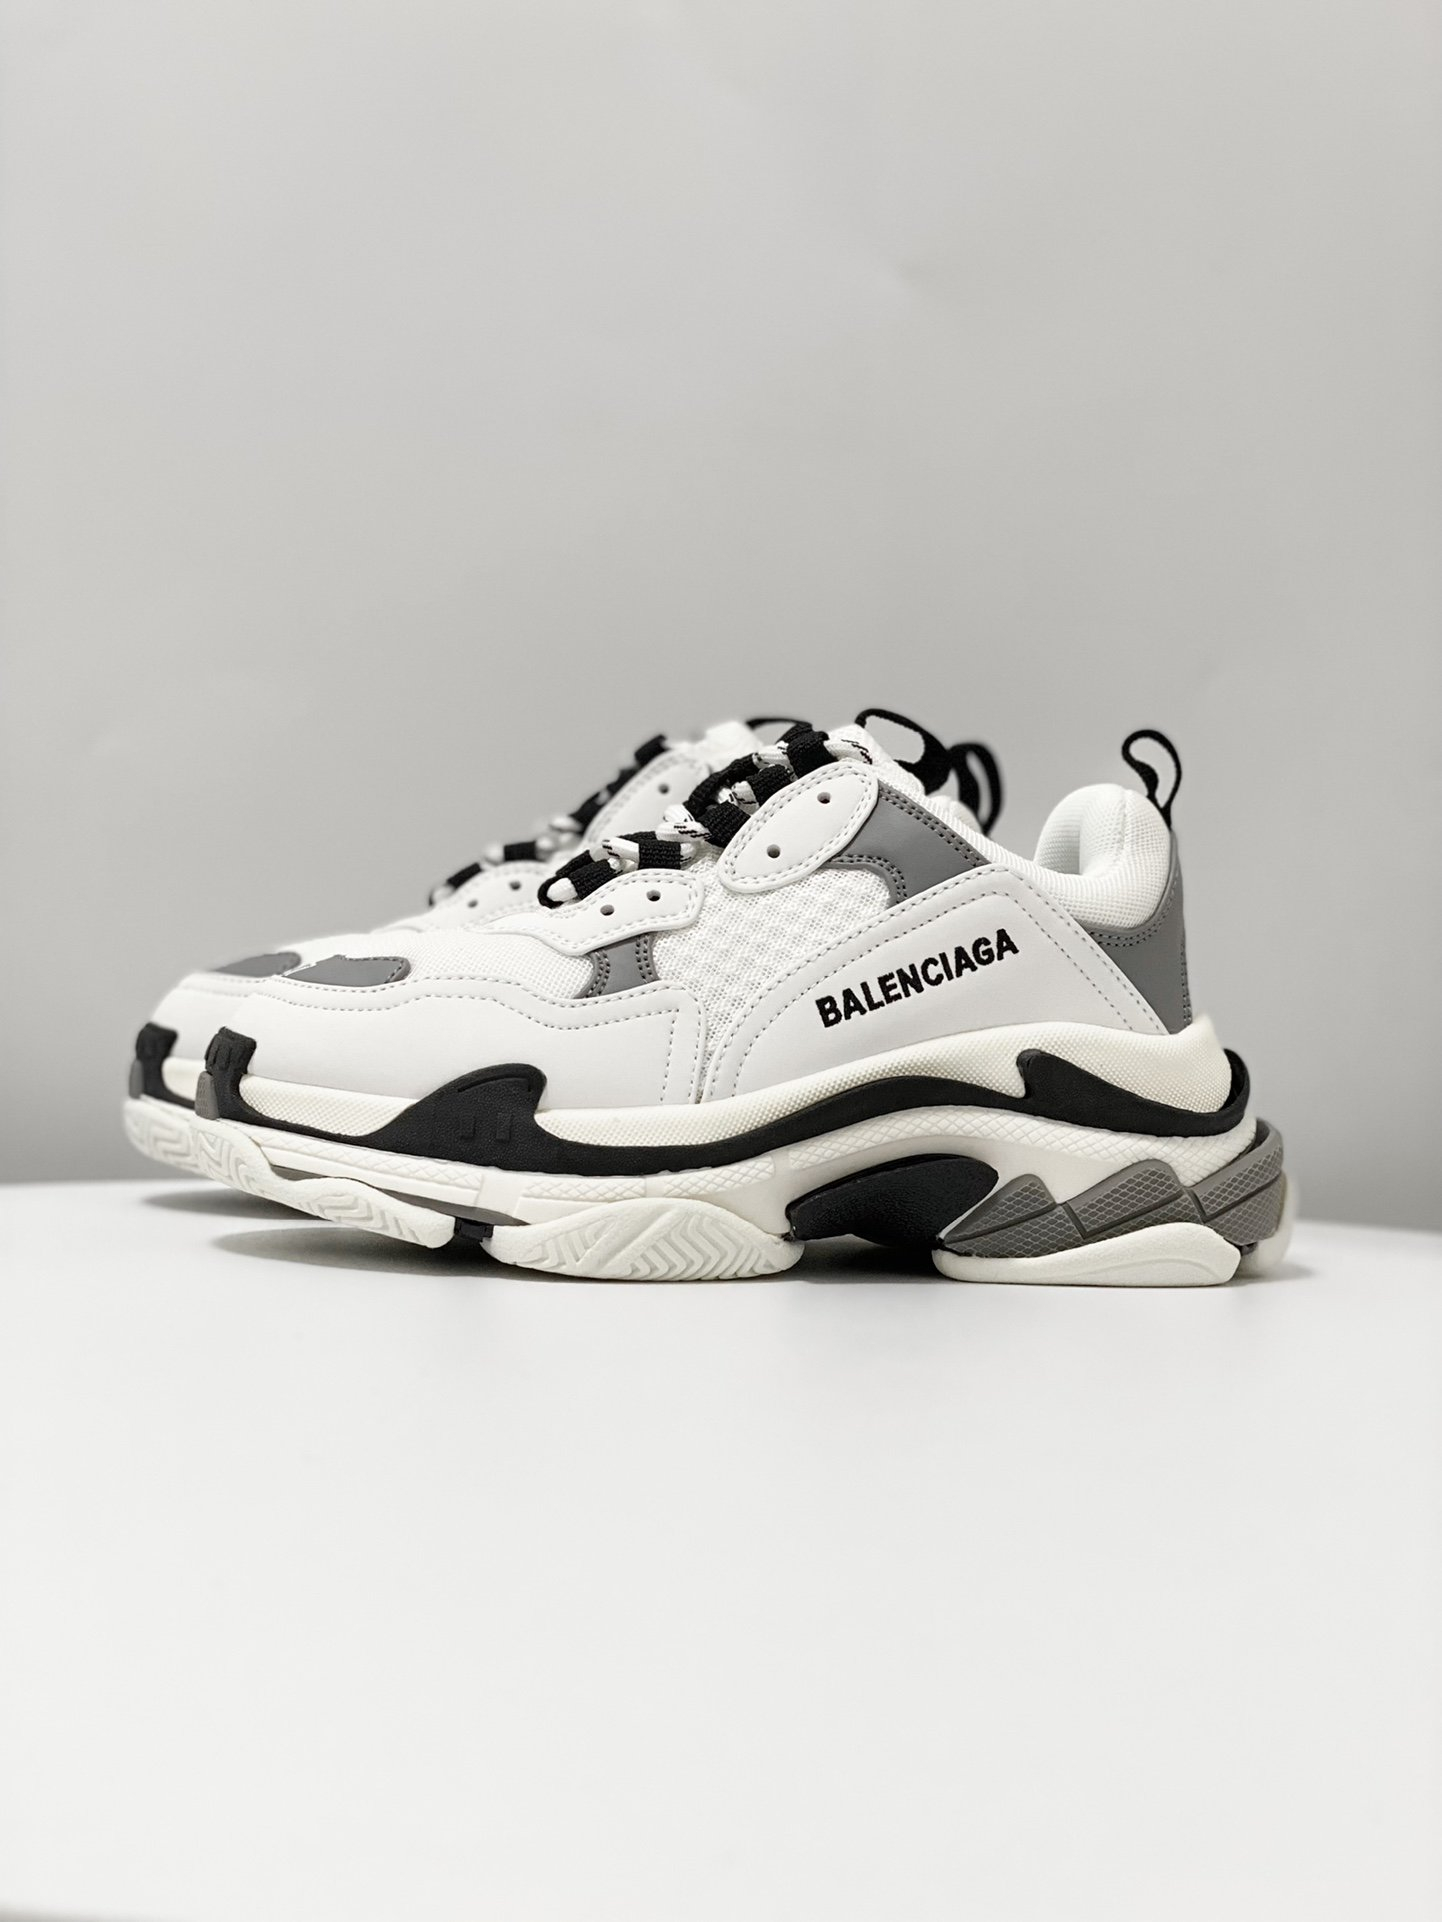 Image of Balenciaga Men's And Women's 2021 NEW ARRIVALS Triple-s Sneakers Shoes